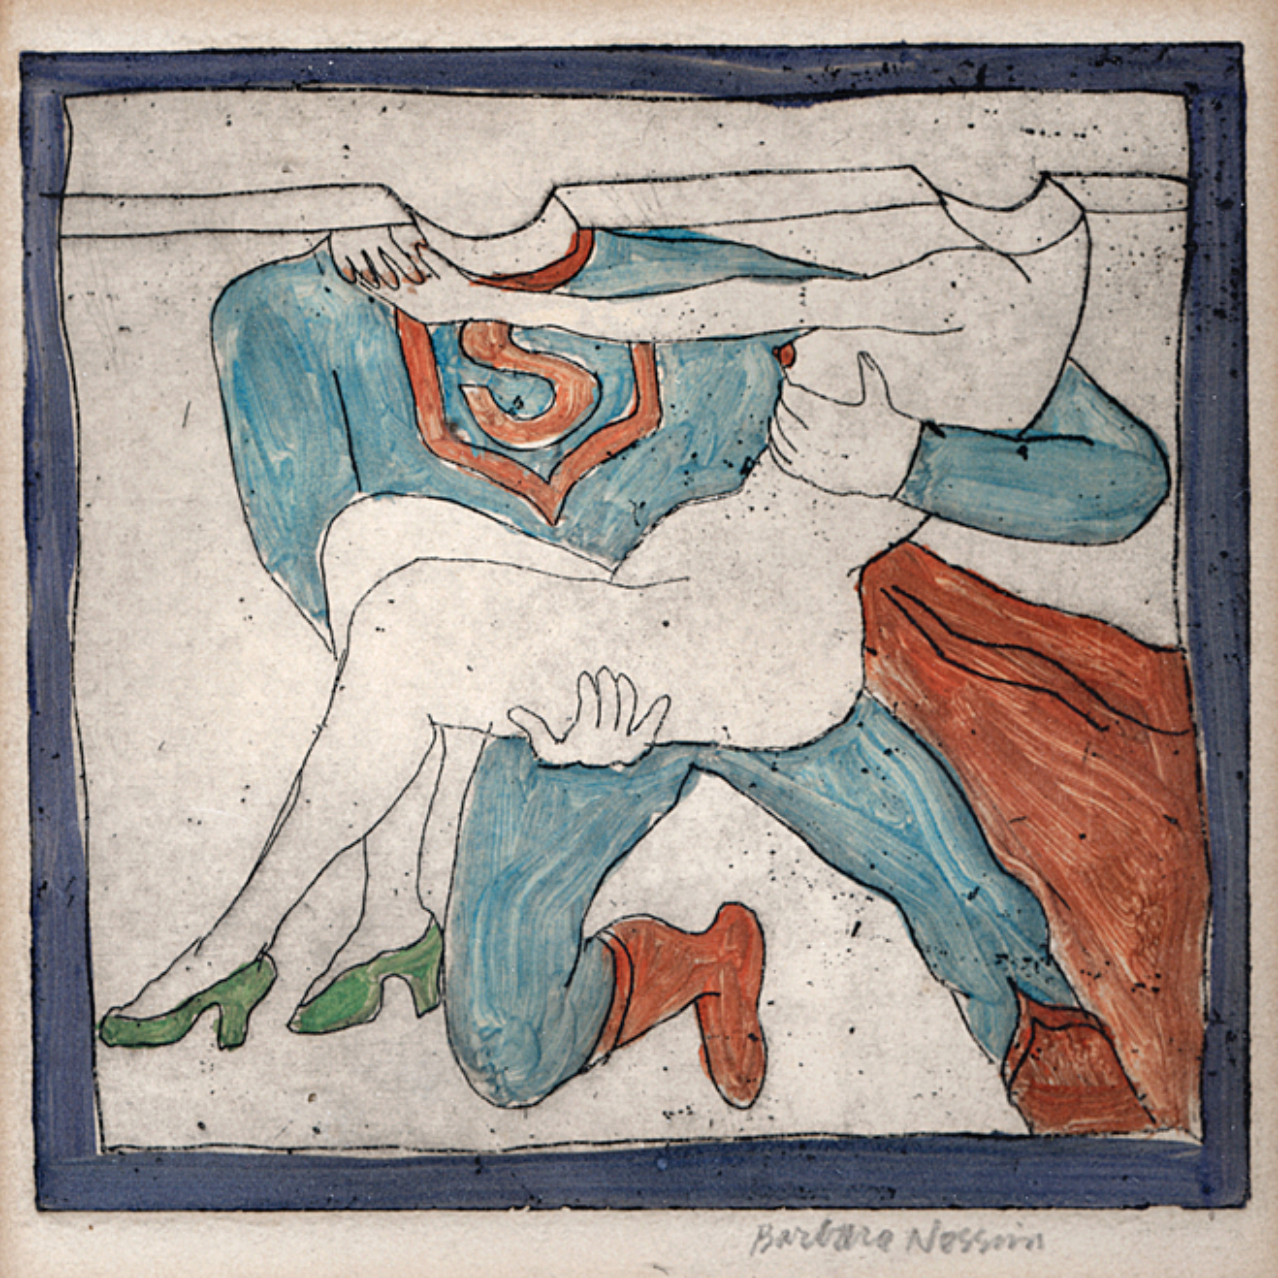 Superman Carrying Girl with Green Shoes, 1963